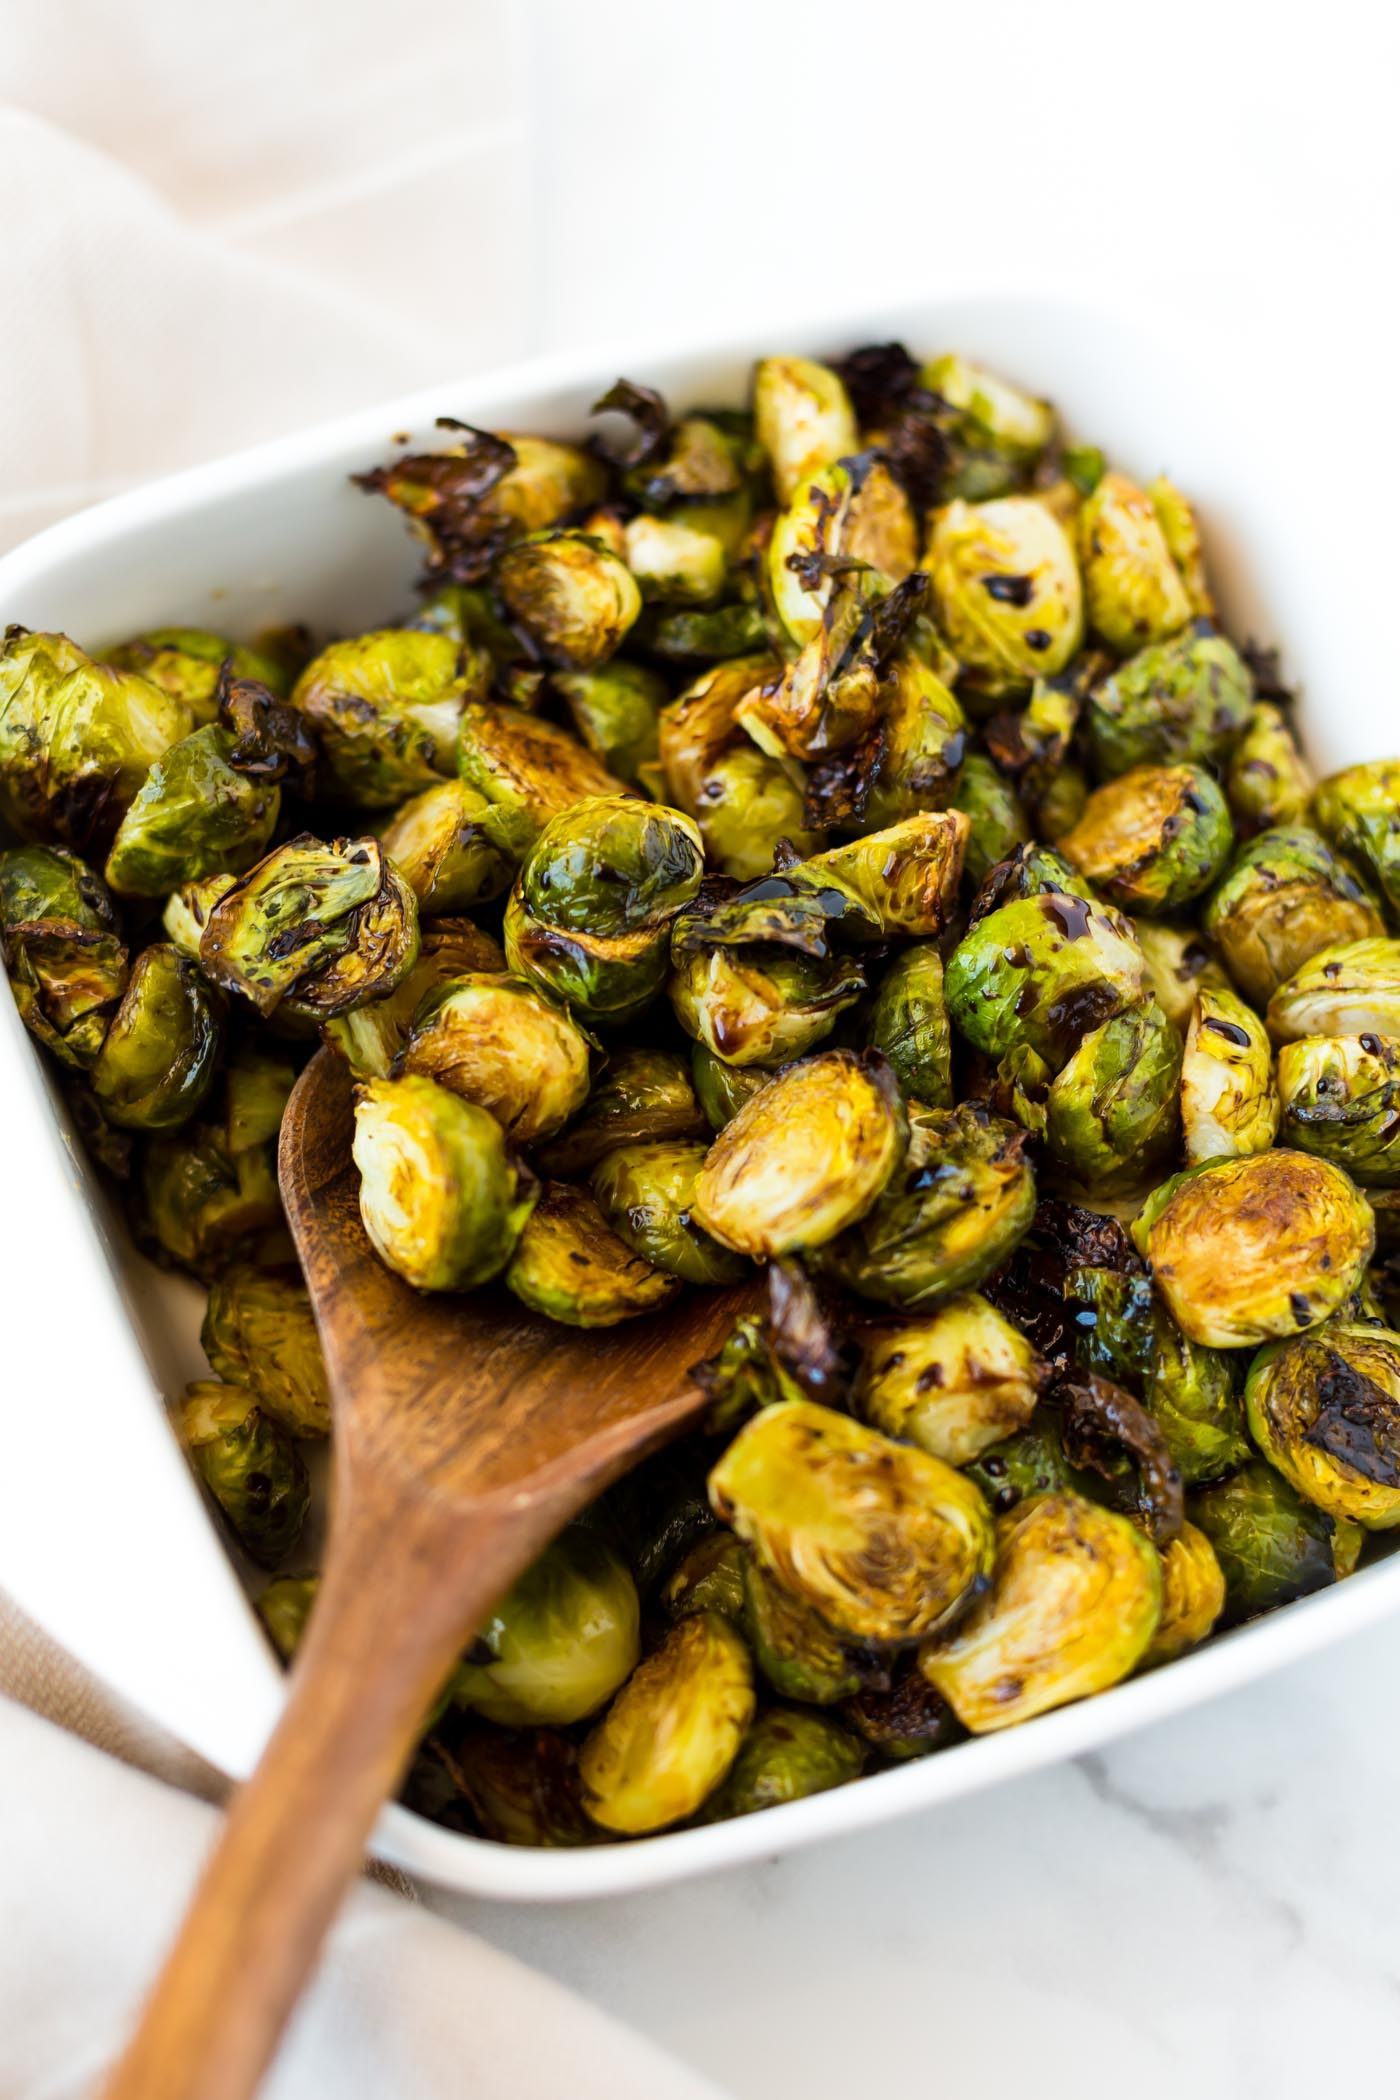 roasted balsamic brussels sprouts in white dish with wooden spoon